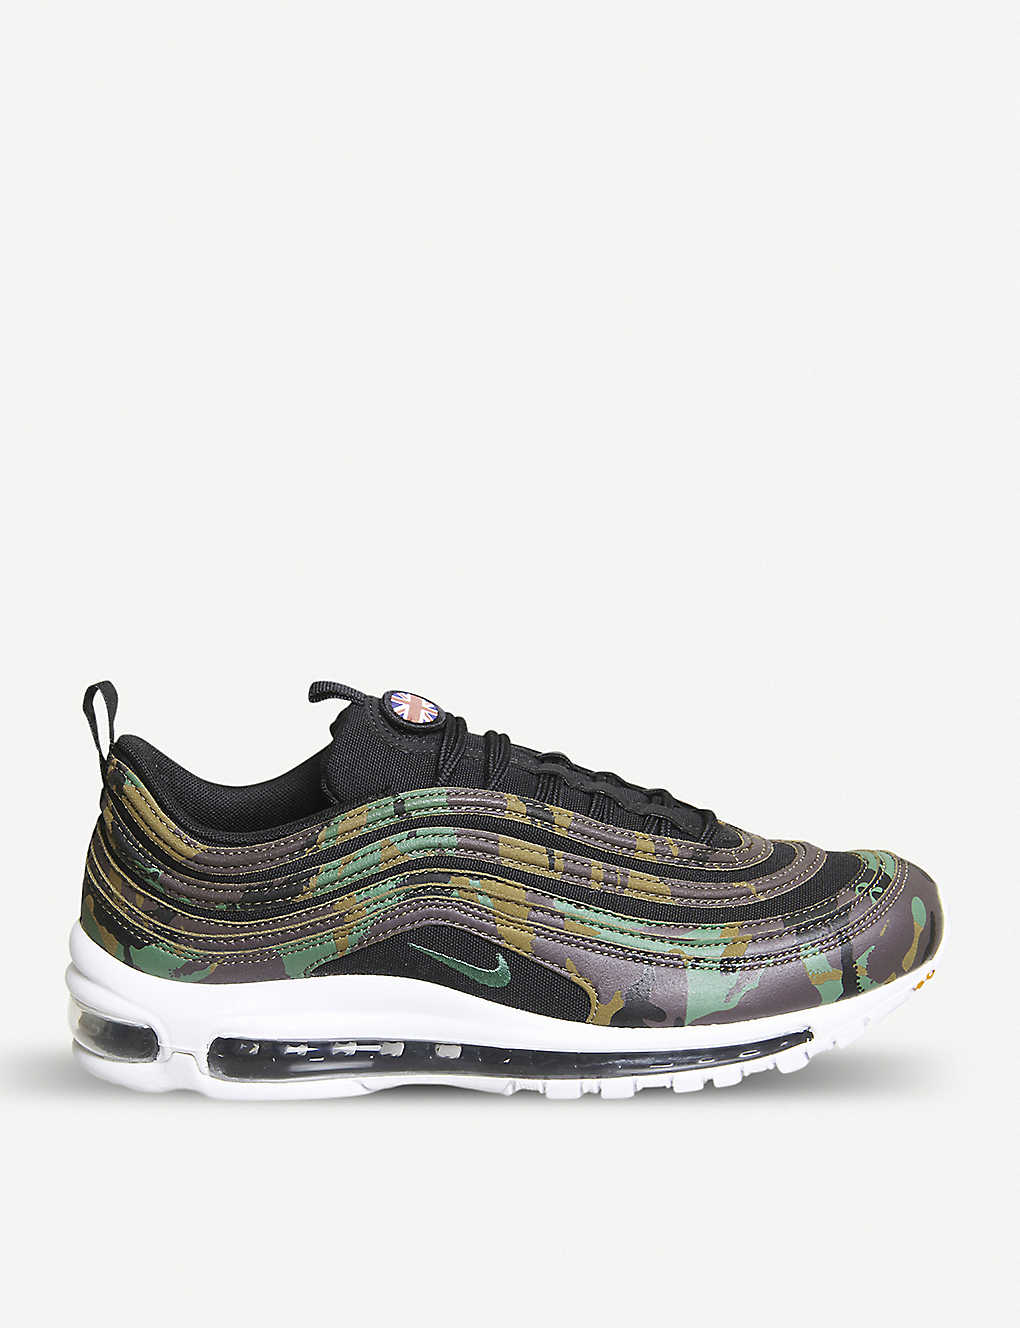 06bc70a1ad NIKE - Air Max 97 Country Camo UK leather, textile and mesh trainers ...